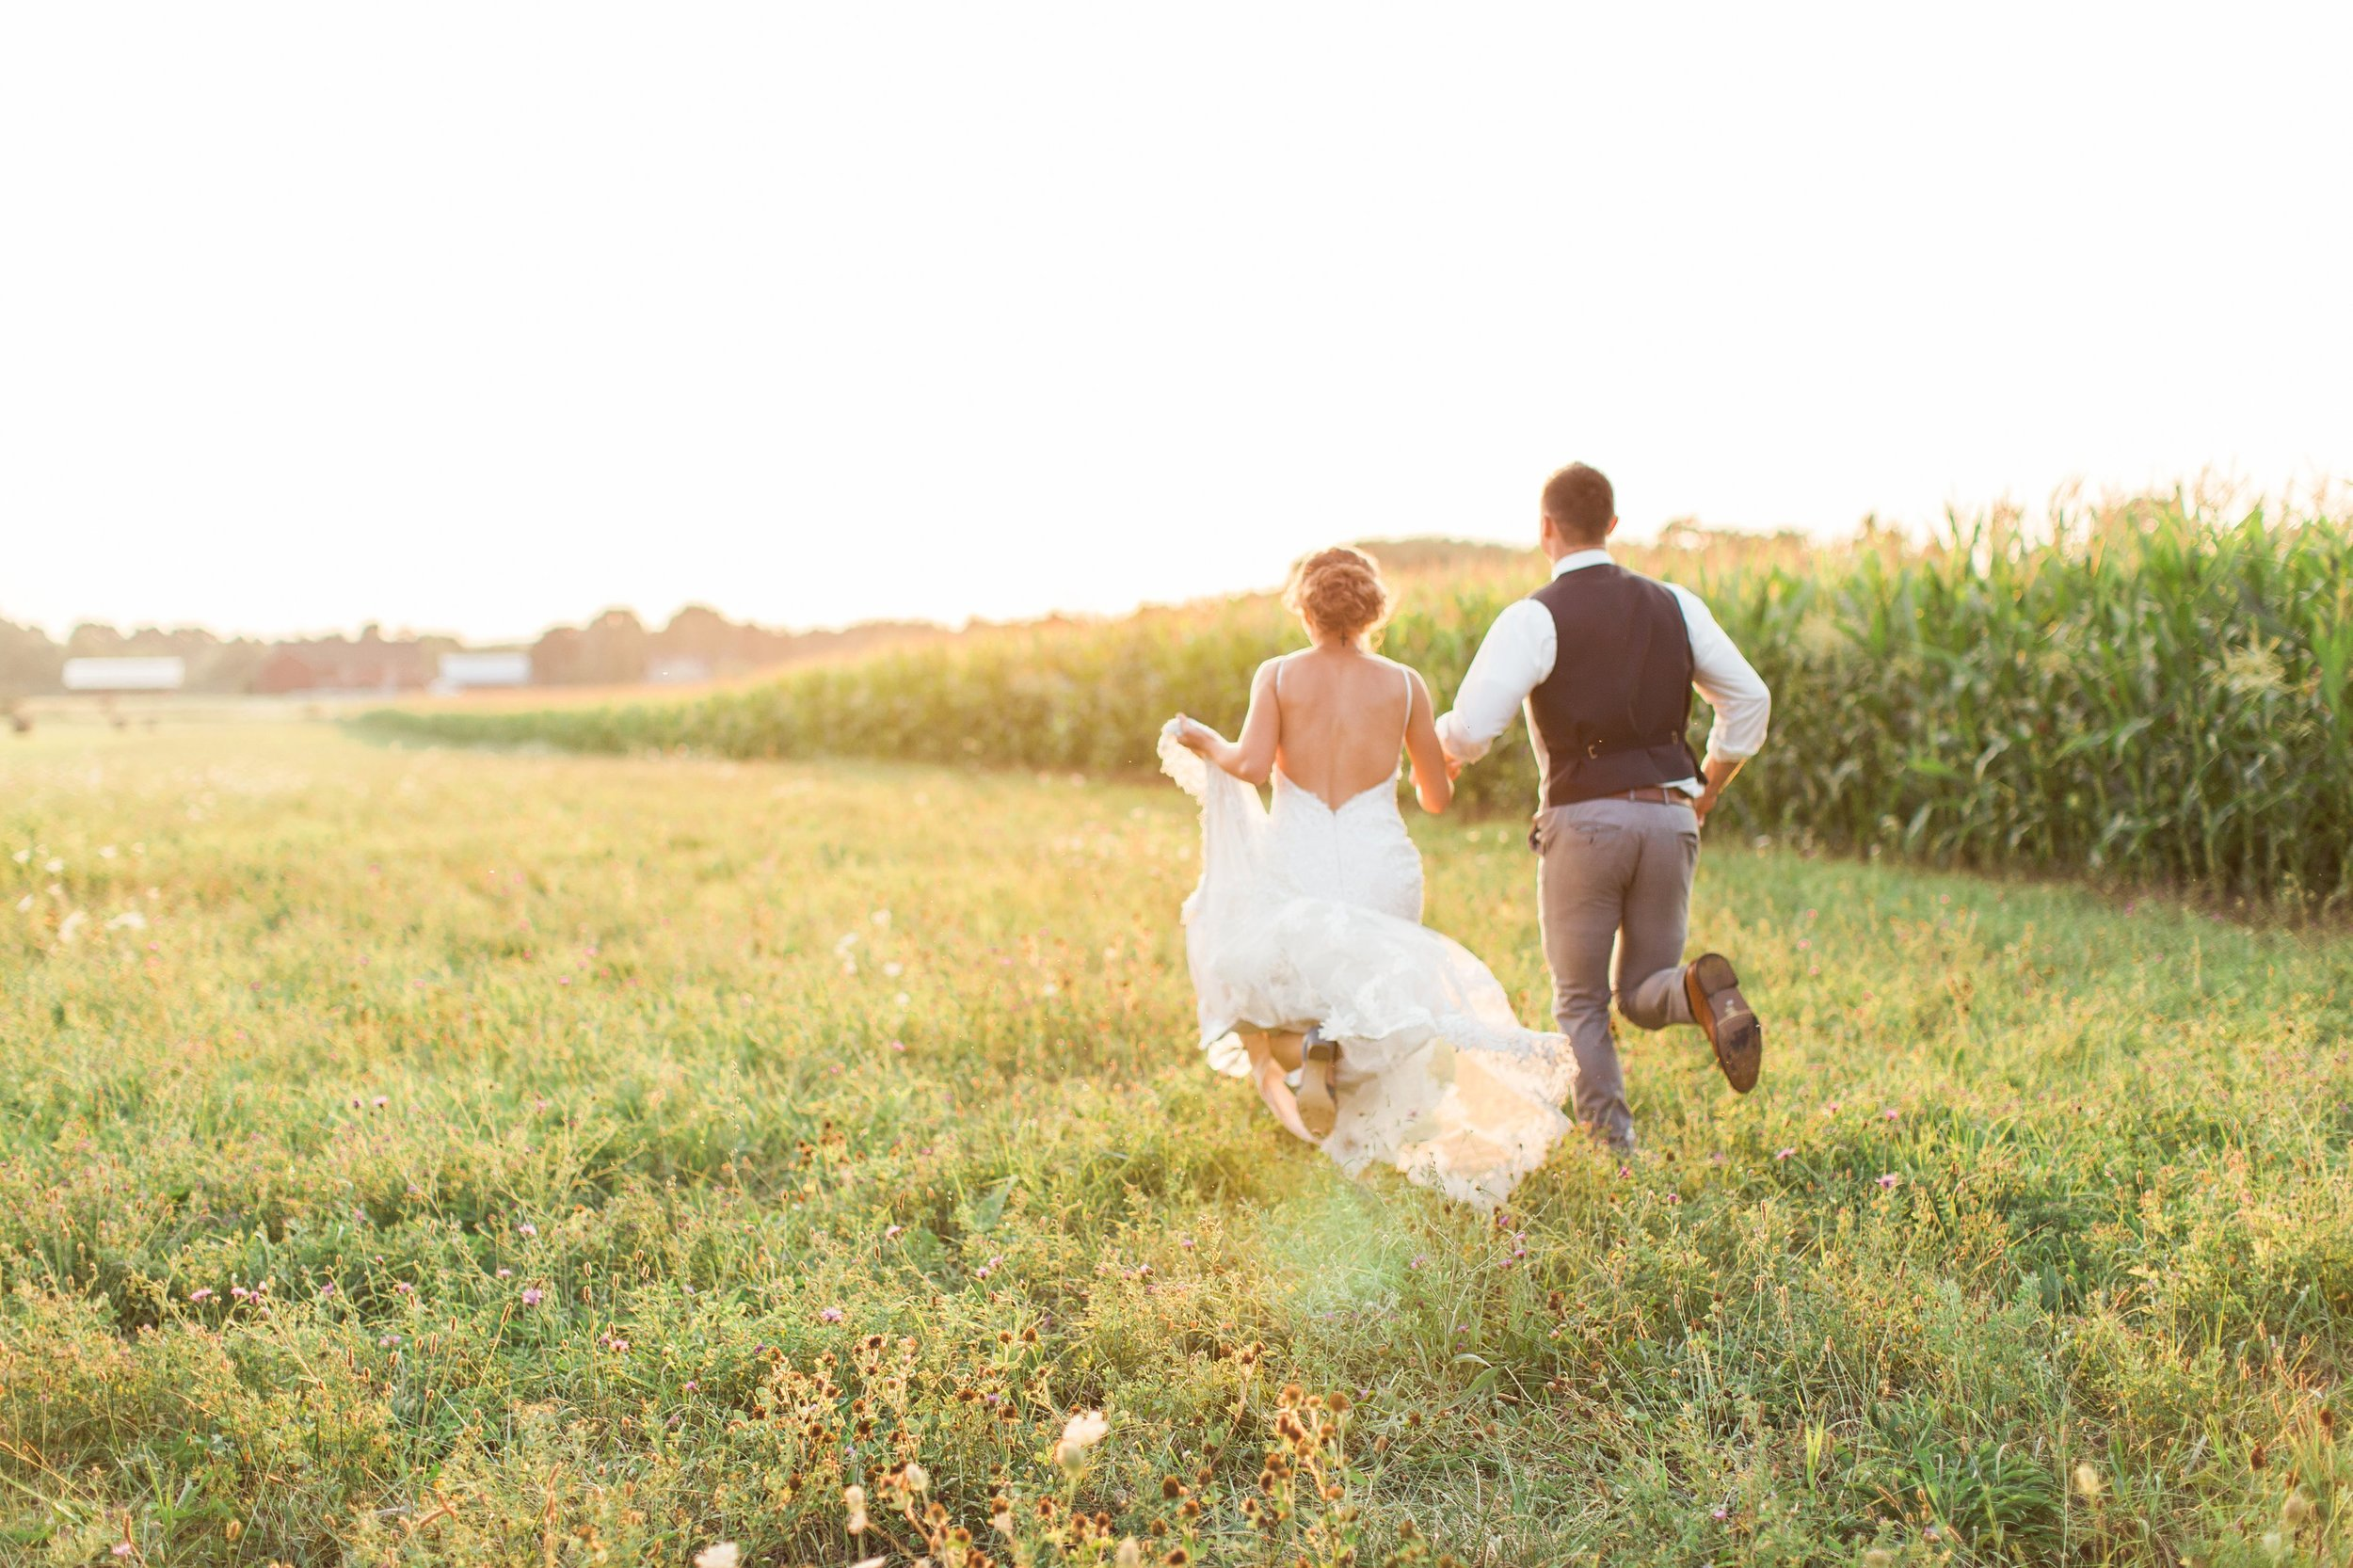 bride and groom running into the sunset portraits at outdoor summer wedding by seattle photographer janelle elaine photography.jpg